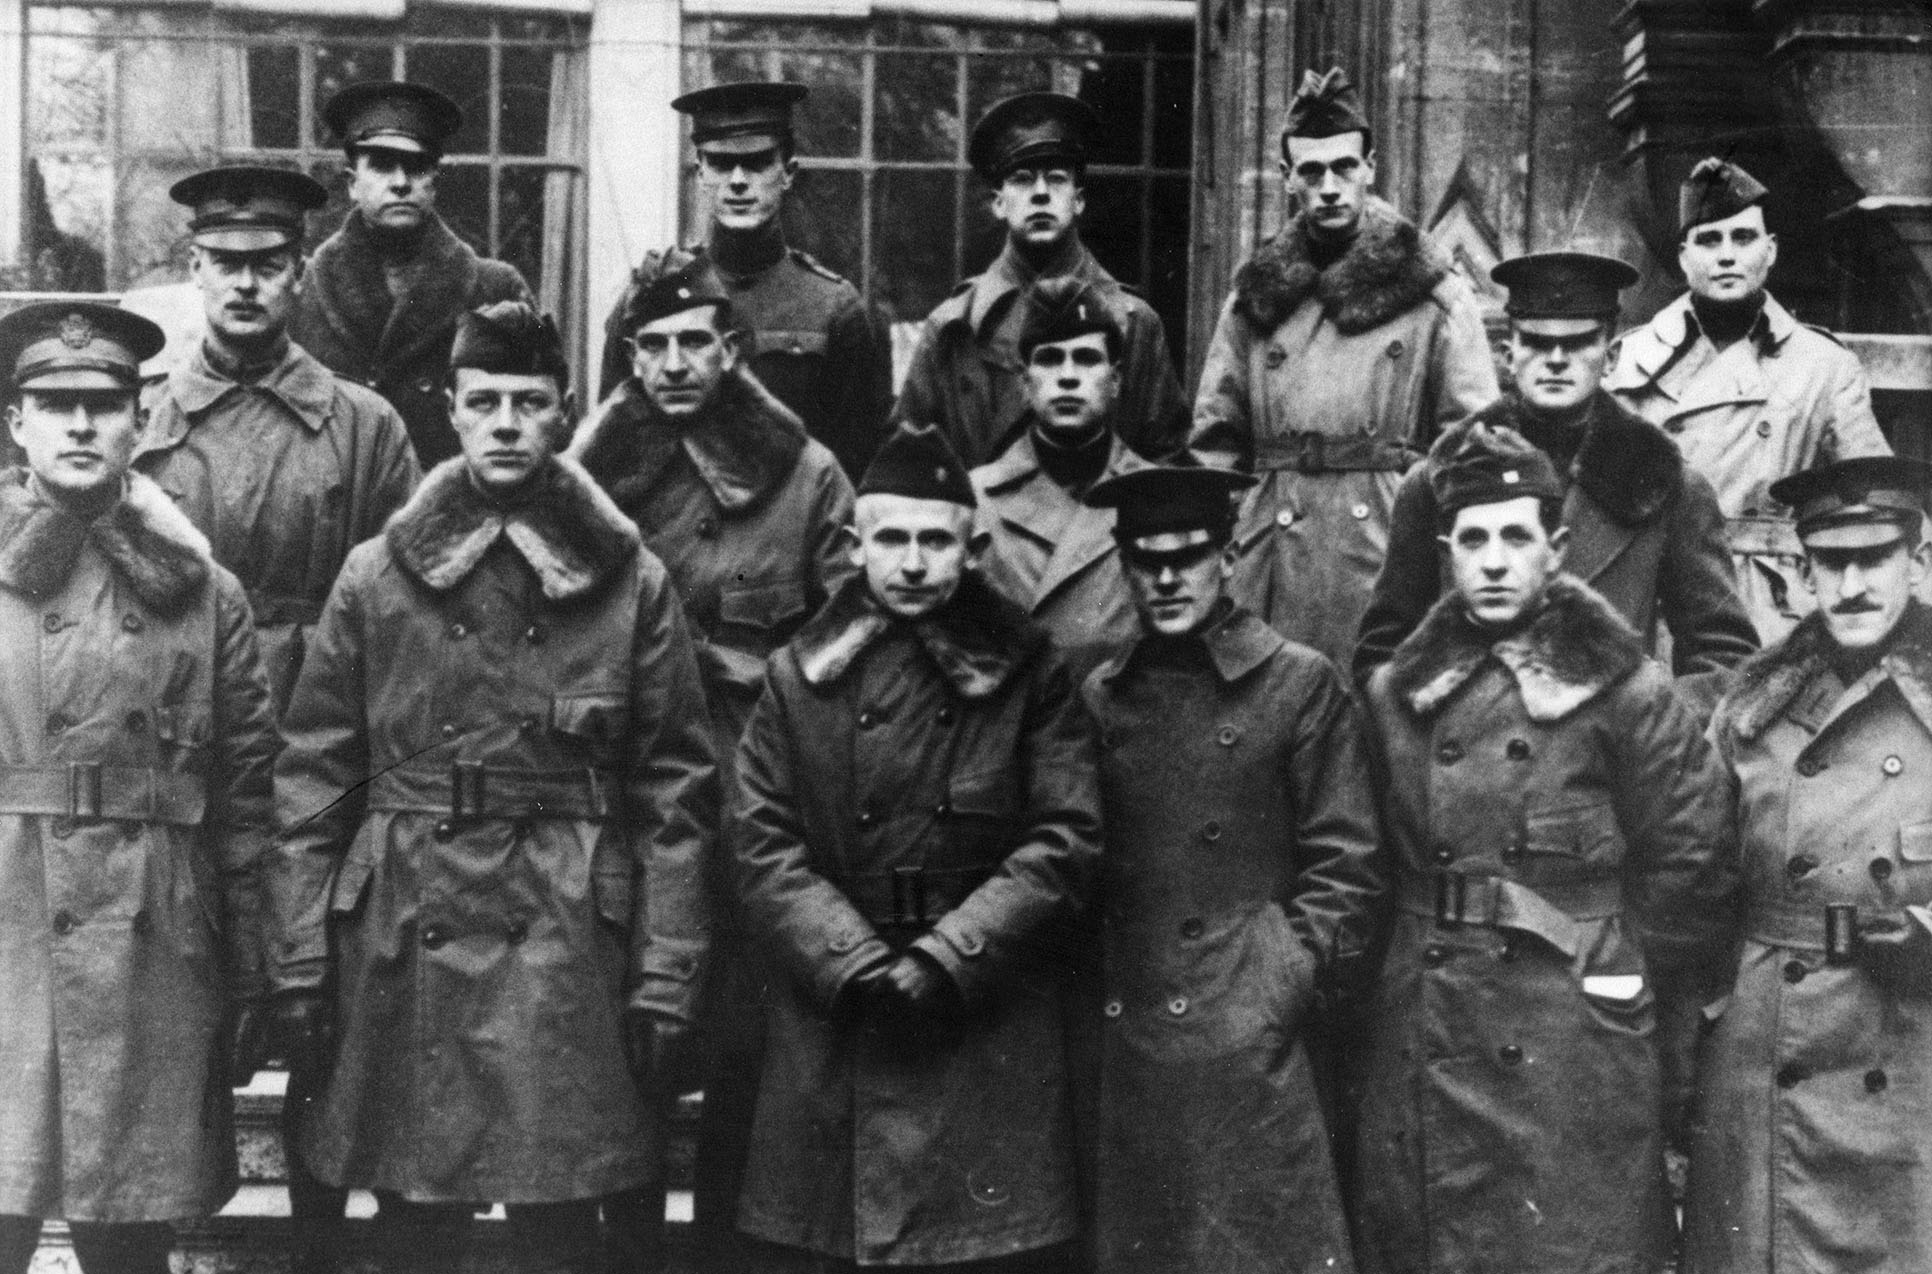 The 15 U.S. Army Officers who served as the first Diplomatic Couriers. They were assigned to the U.S. Embassy in Paris, France in 1918. Courier founder, Major Amos J. Peaslee (center) is flanked by the first group of couriers. The U.S. Army's Silver Greyhounds were assigned to the U.S. Embassy in Paris in 1918 as part of the Delegation to Negotiate Peace, becoming the first dedicated group of diplomatic couriers in U.S. history. (U.S. Department of State photo)